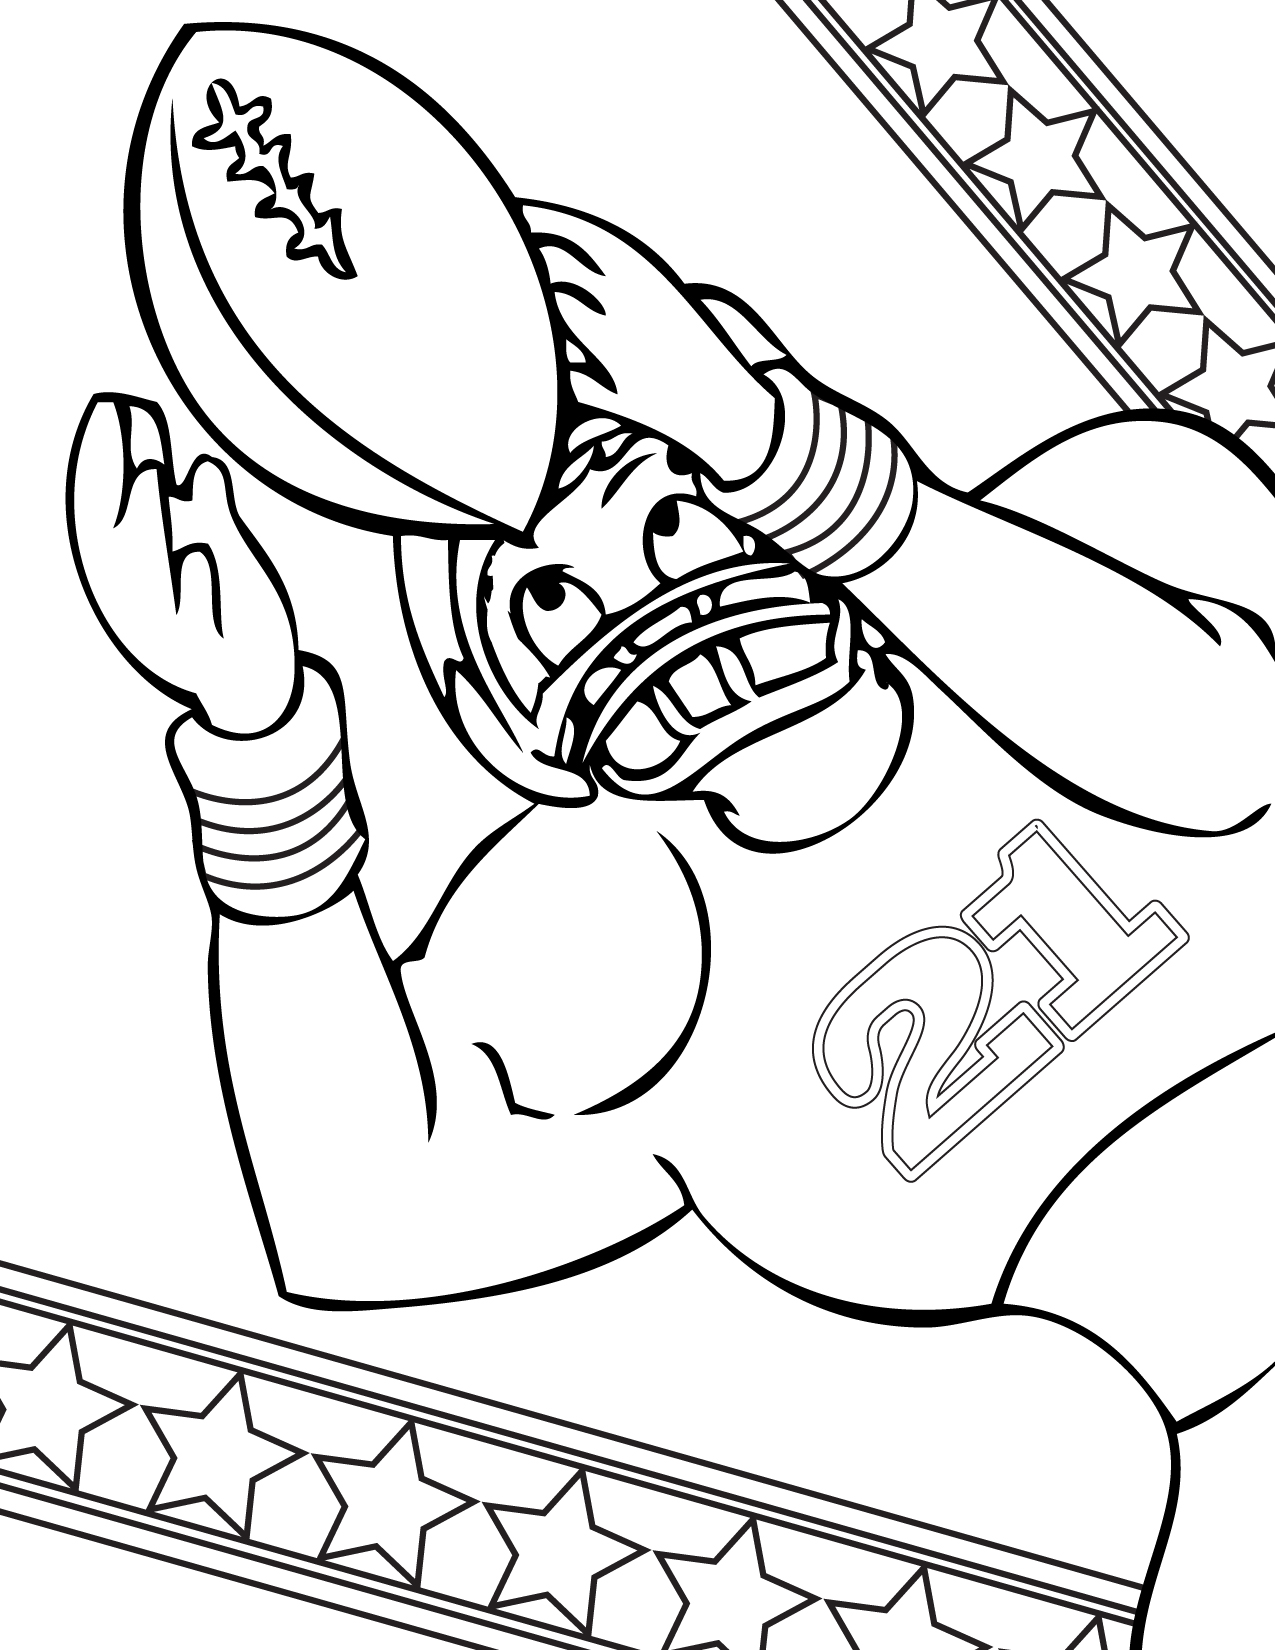 sports coloring page sports coloring pages for boys sports coloring